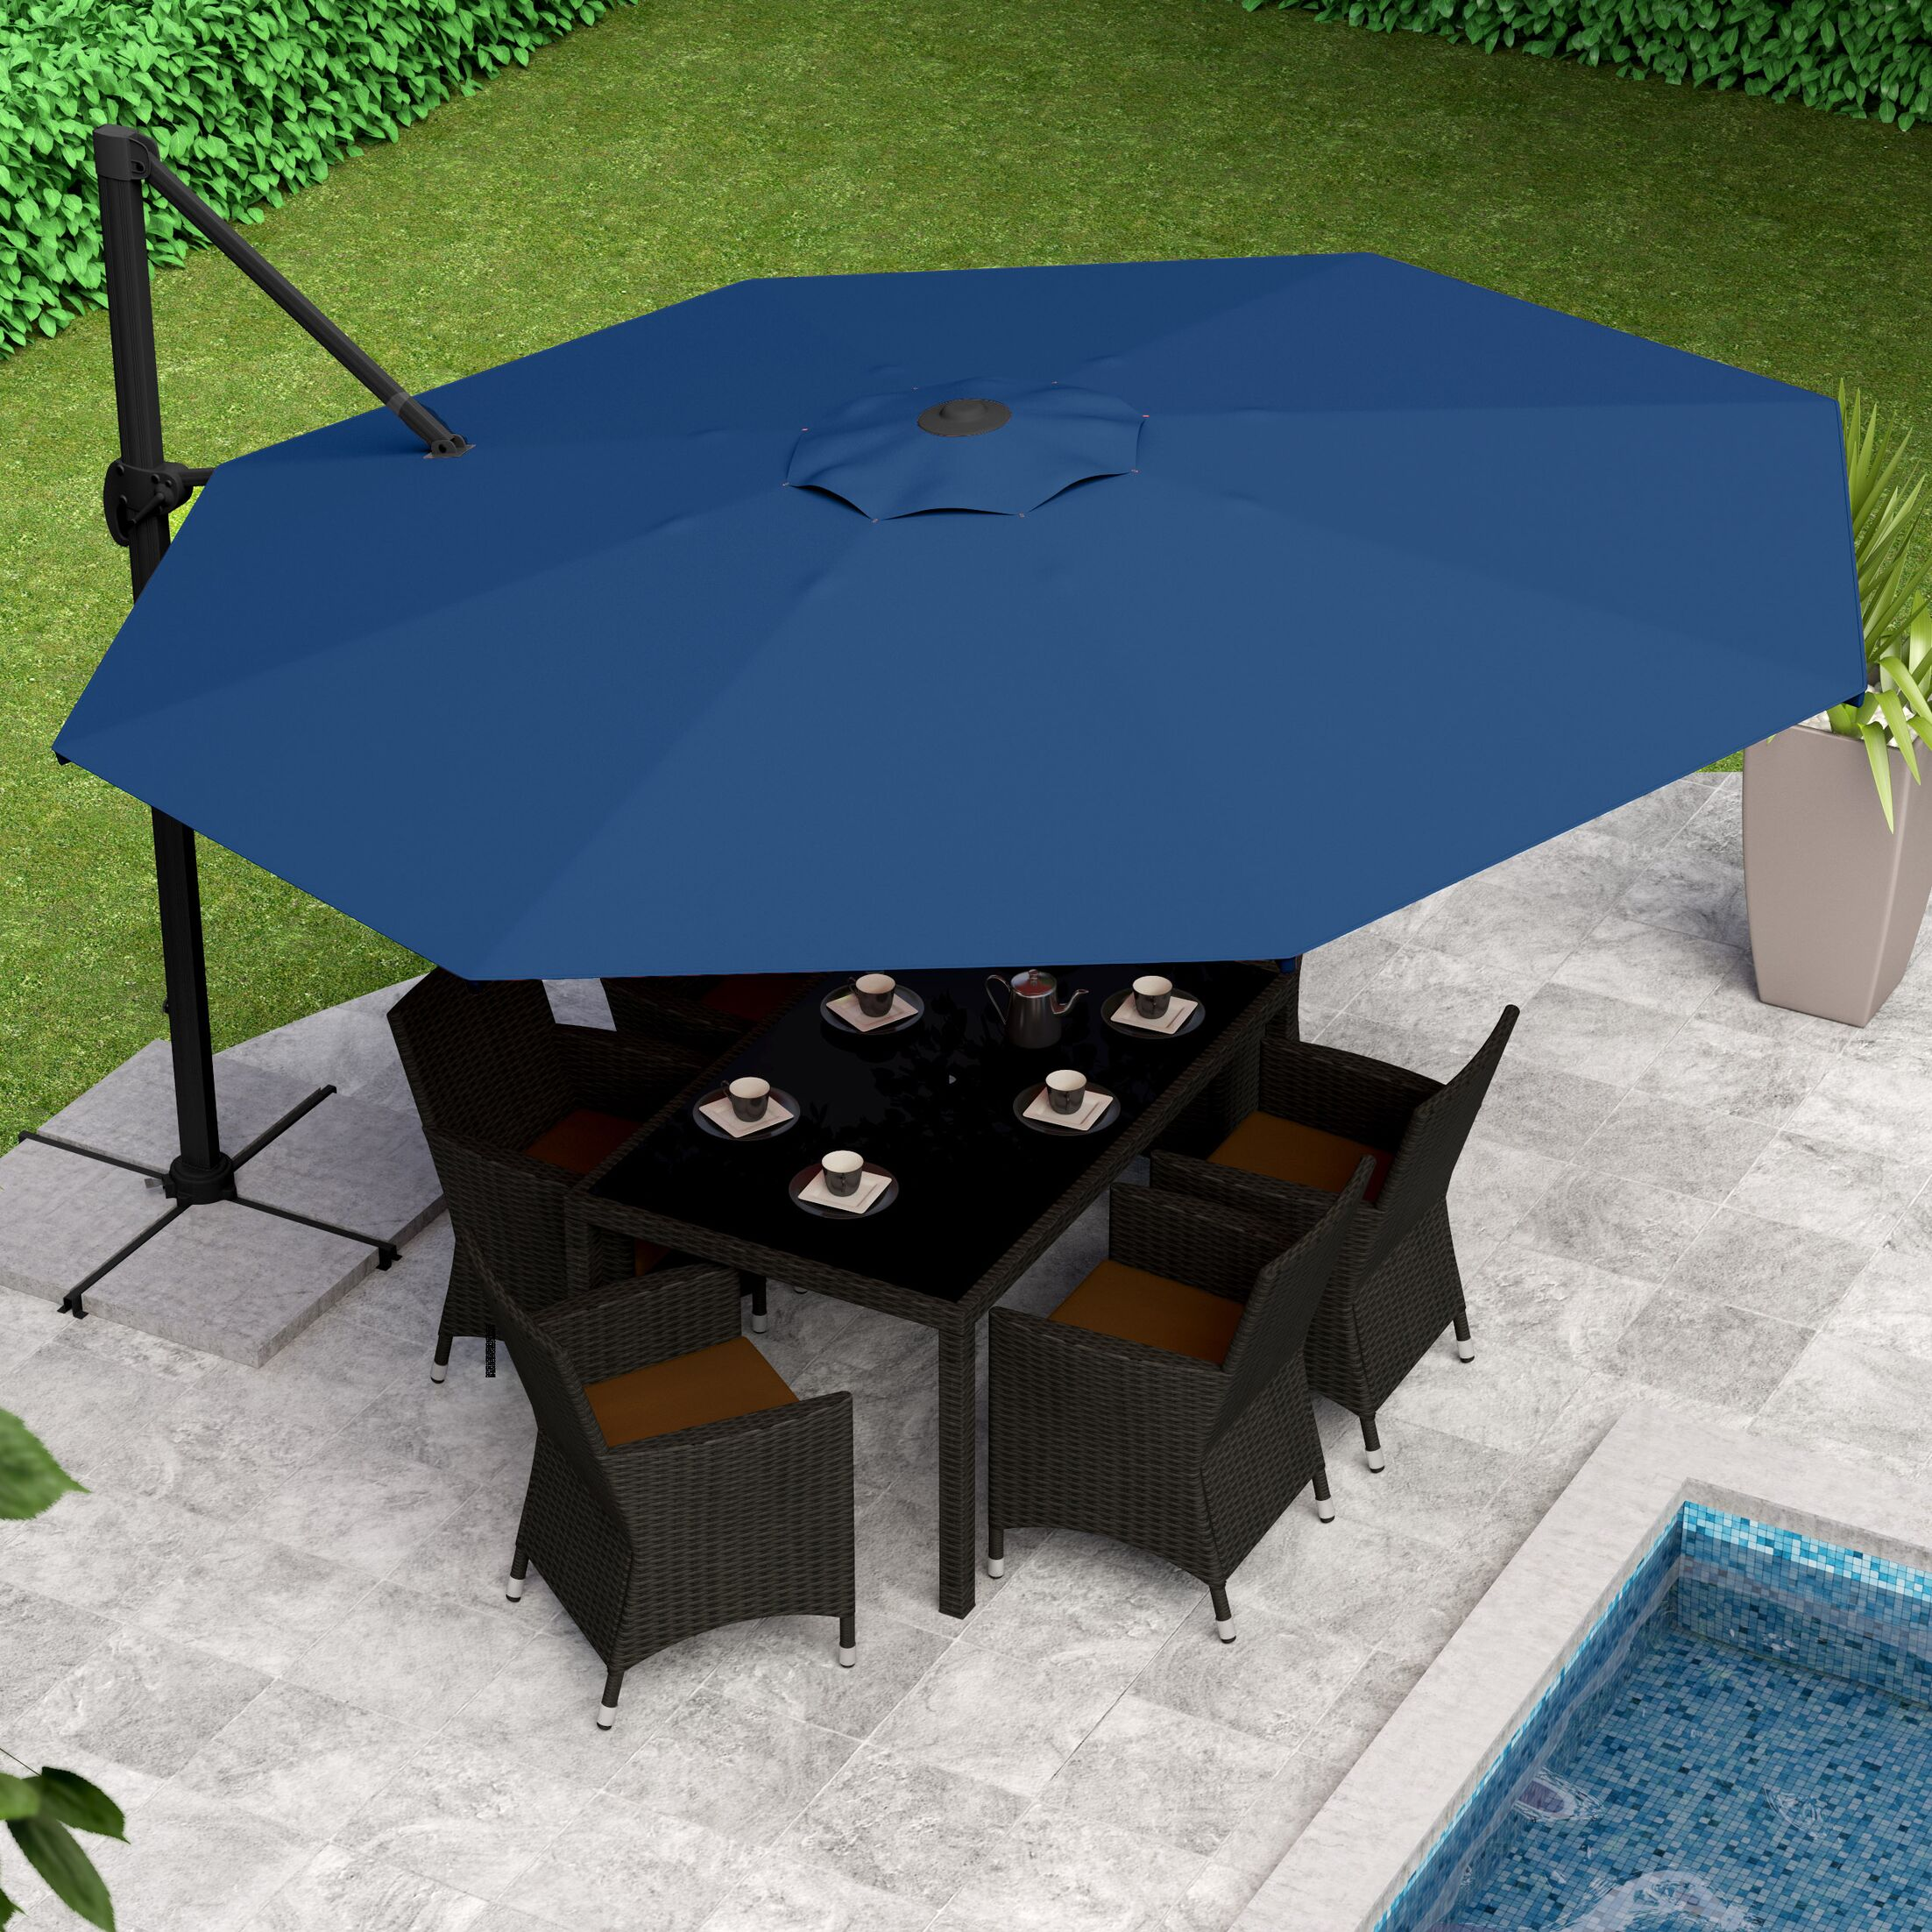 Gribble 11' Cantilever Umbrella Fabric Color: Cobalt Blue